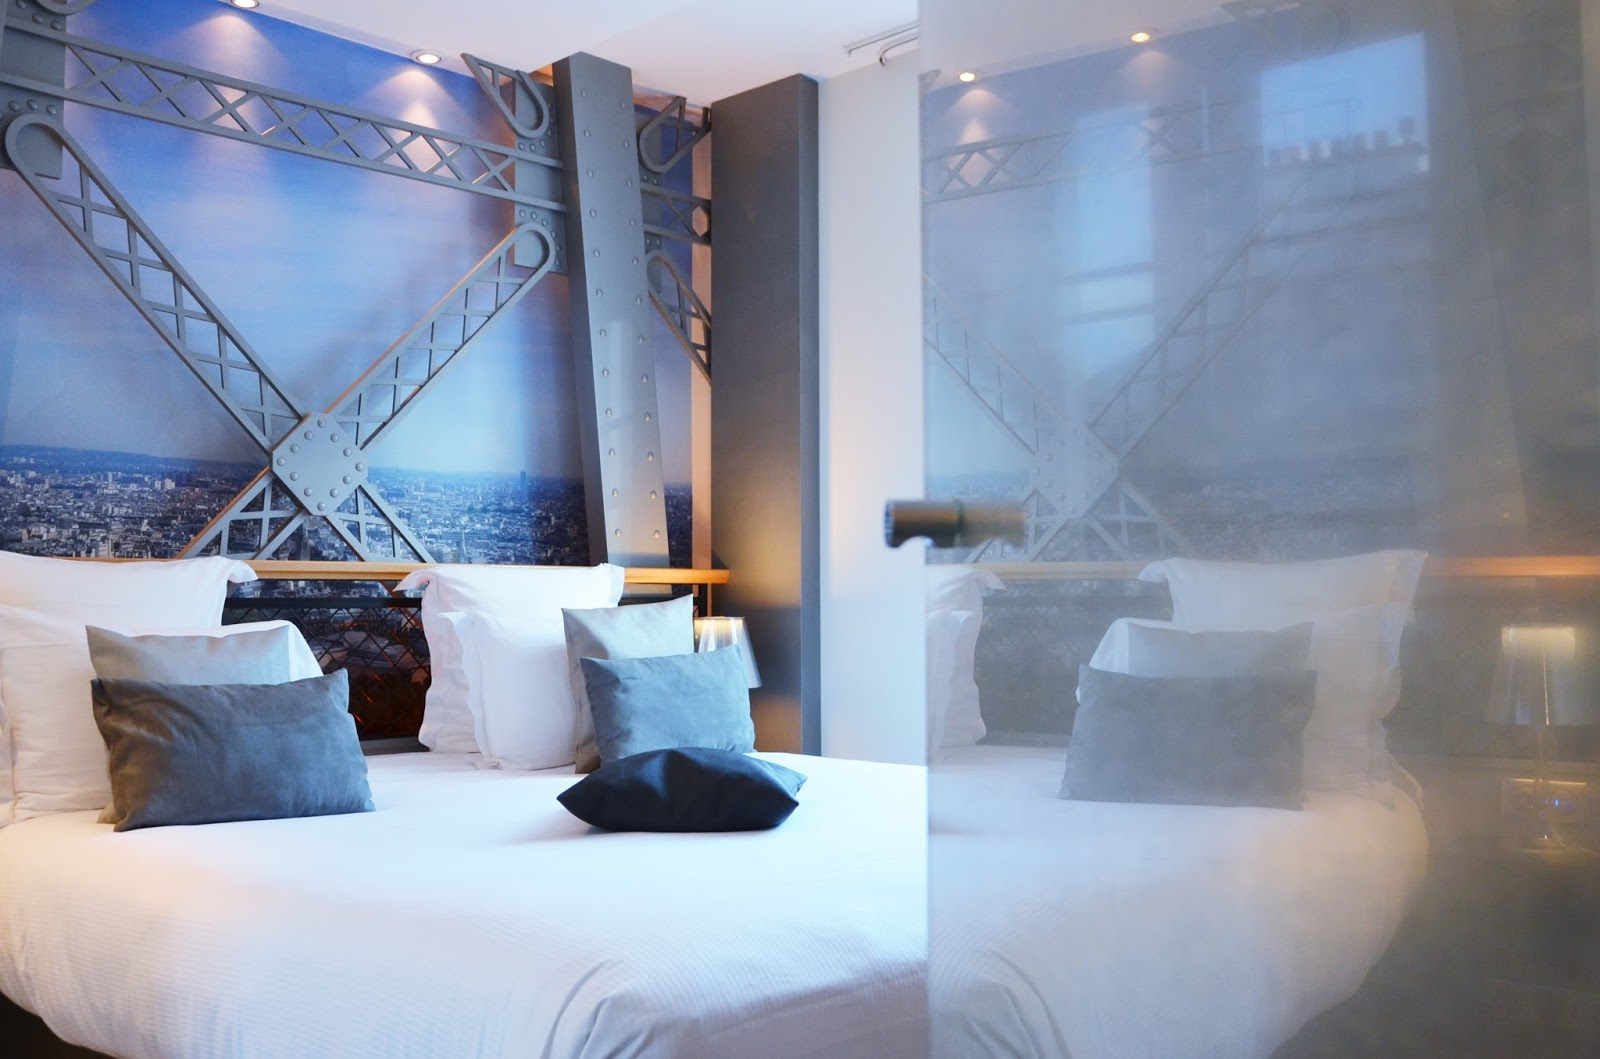 H tel design secret de paris dormir dans un monument for Hotel design secret